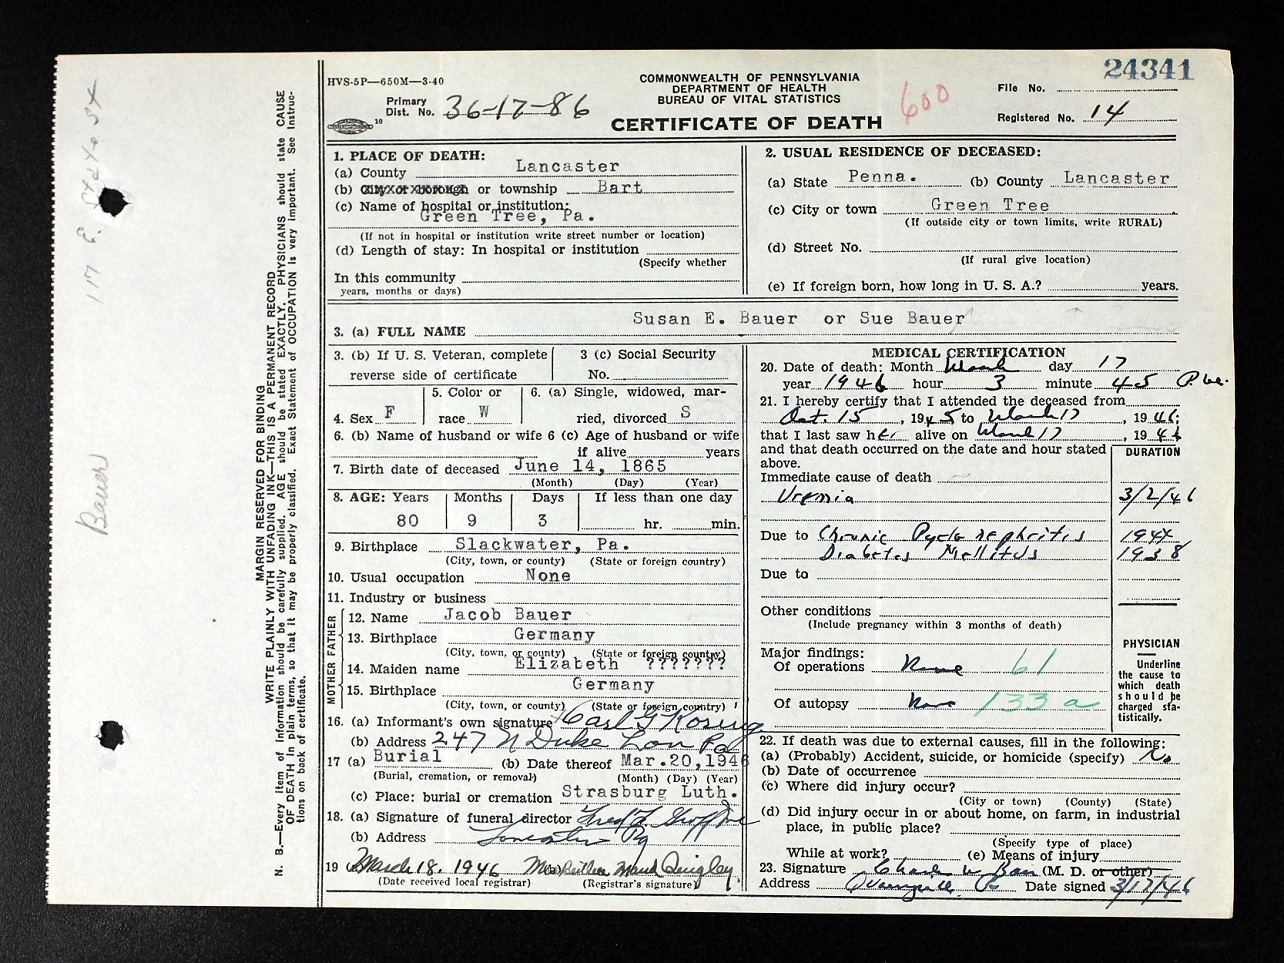 Documents Death Certificate For Susan E Bauer 1865 1946 My